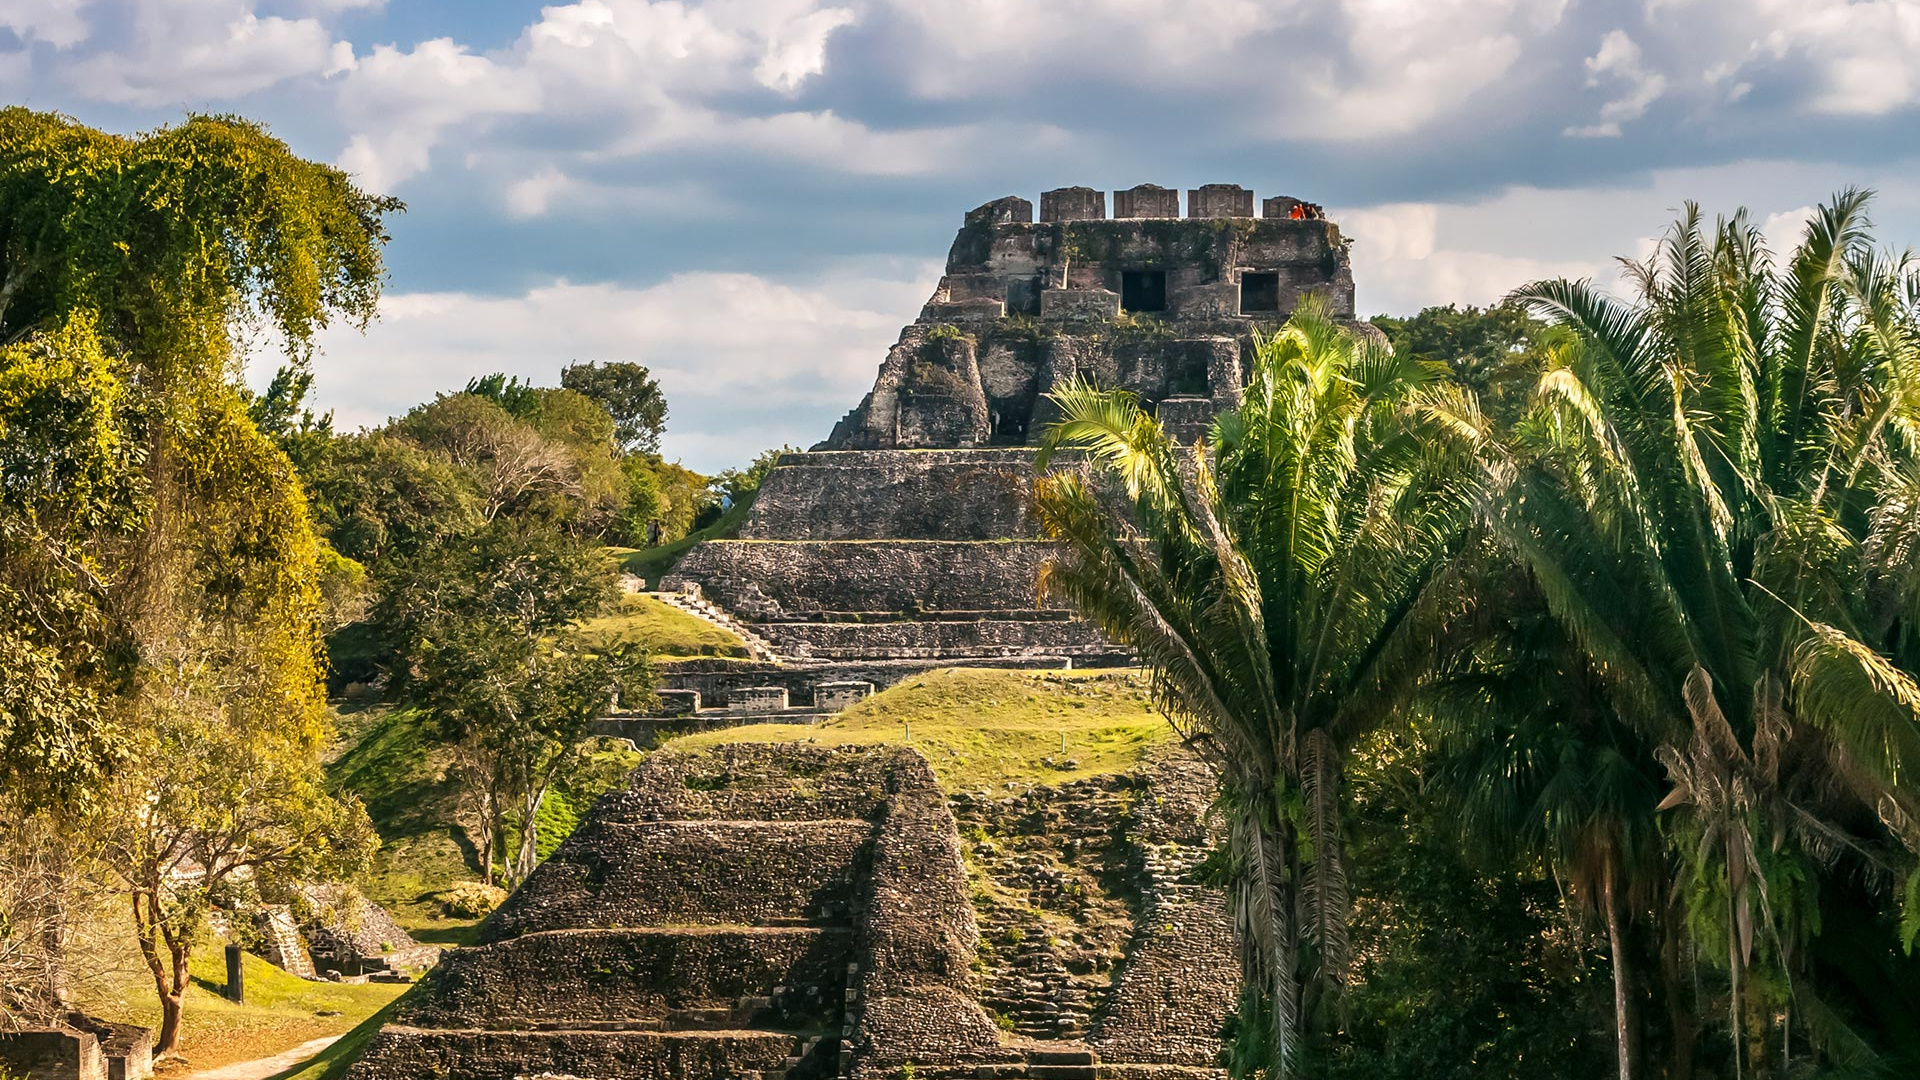 The Maya ruins at Xunantunich in Belize. Photograph by Shutterstock/milosk50